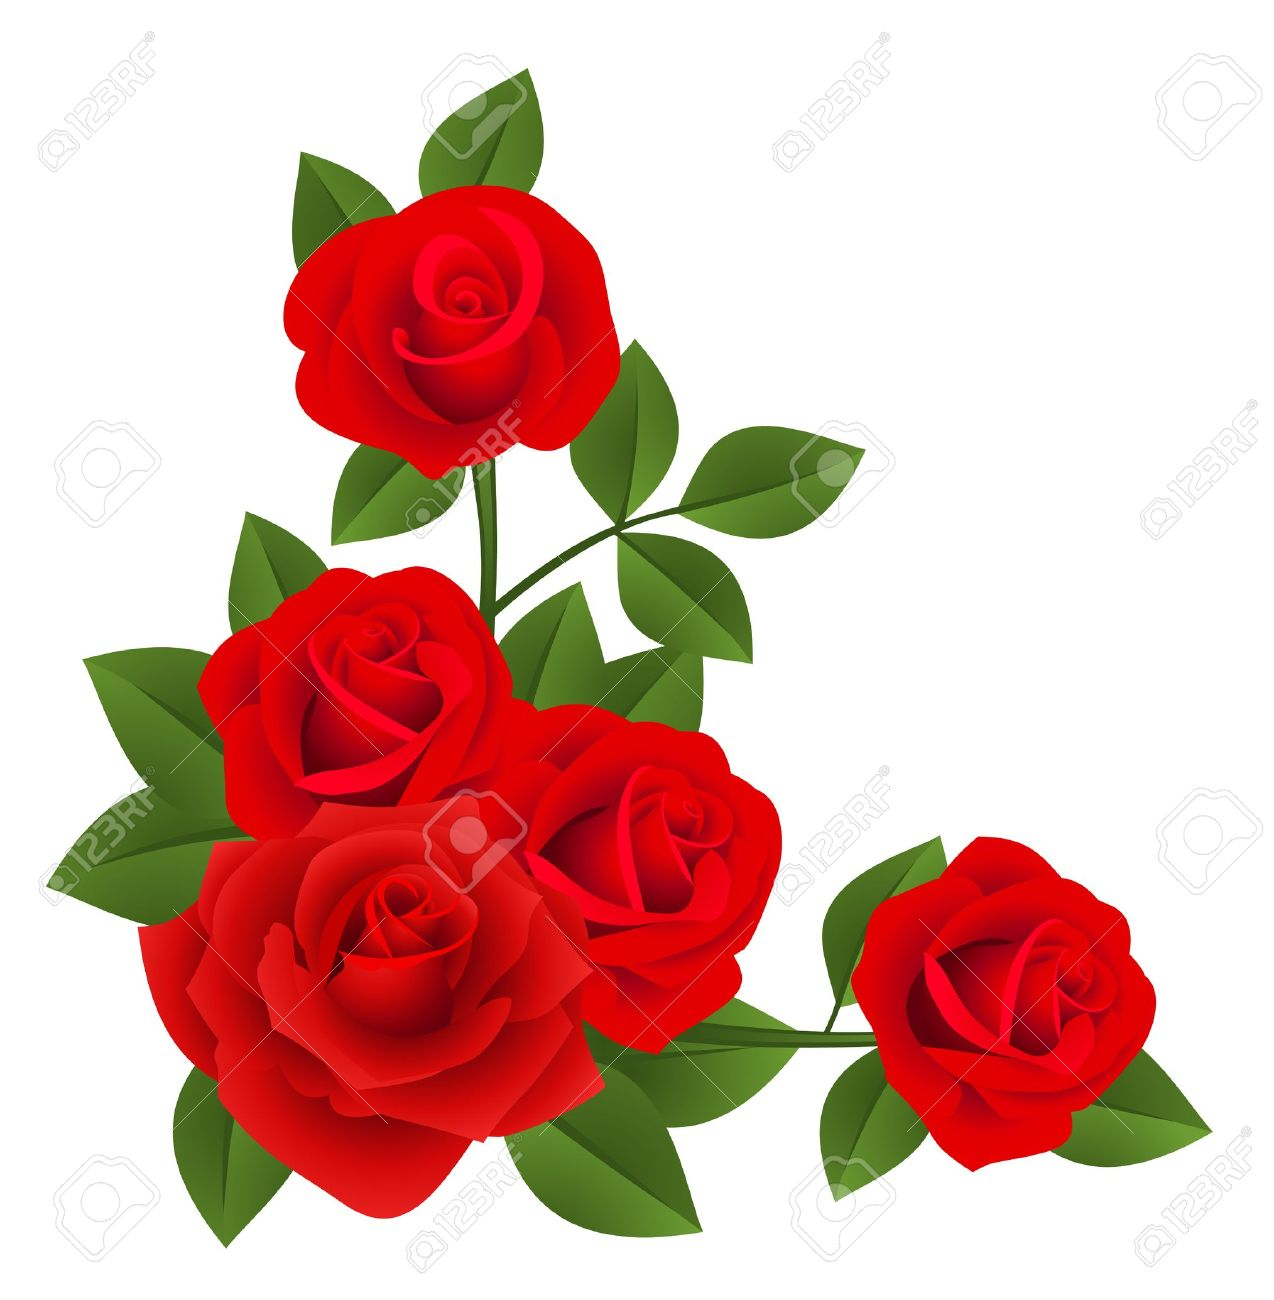 red roses vector illustration royalty free cliparts vectors and rh 123rf com rose vector art rose vector art